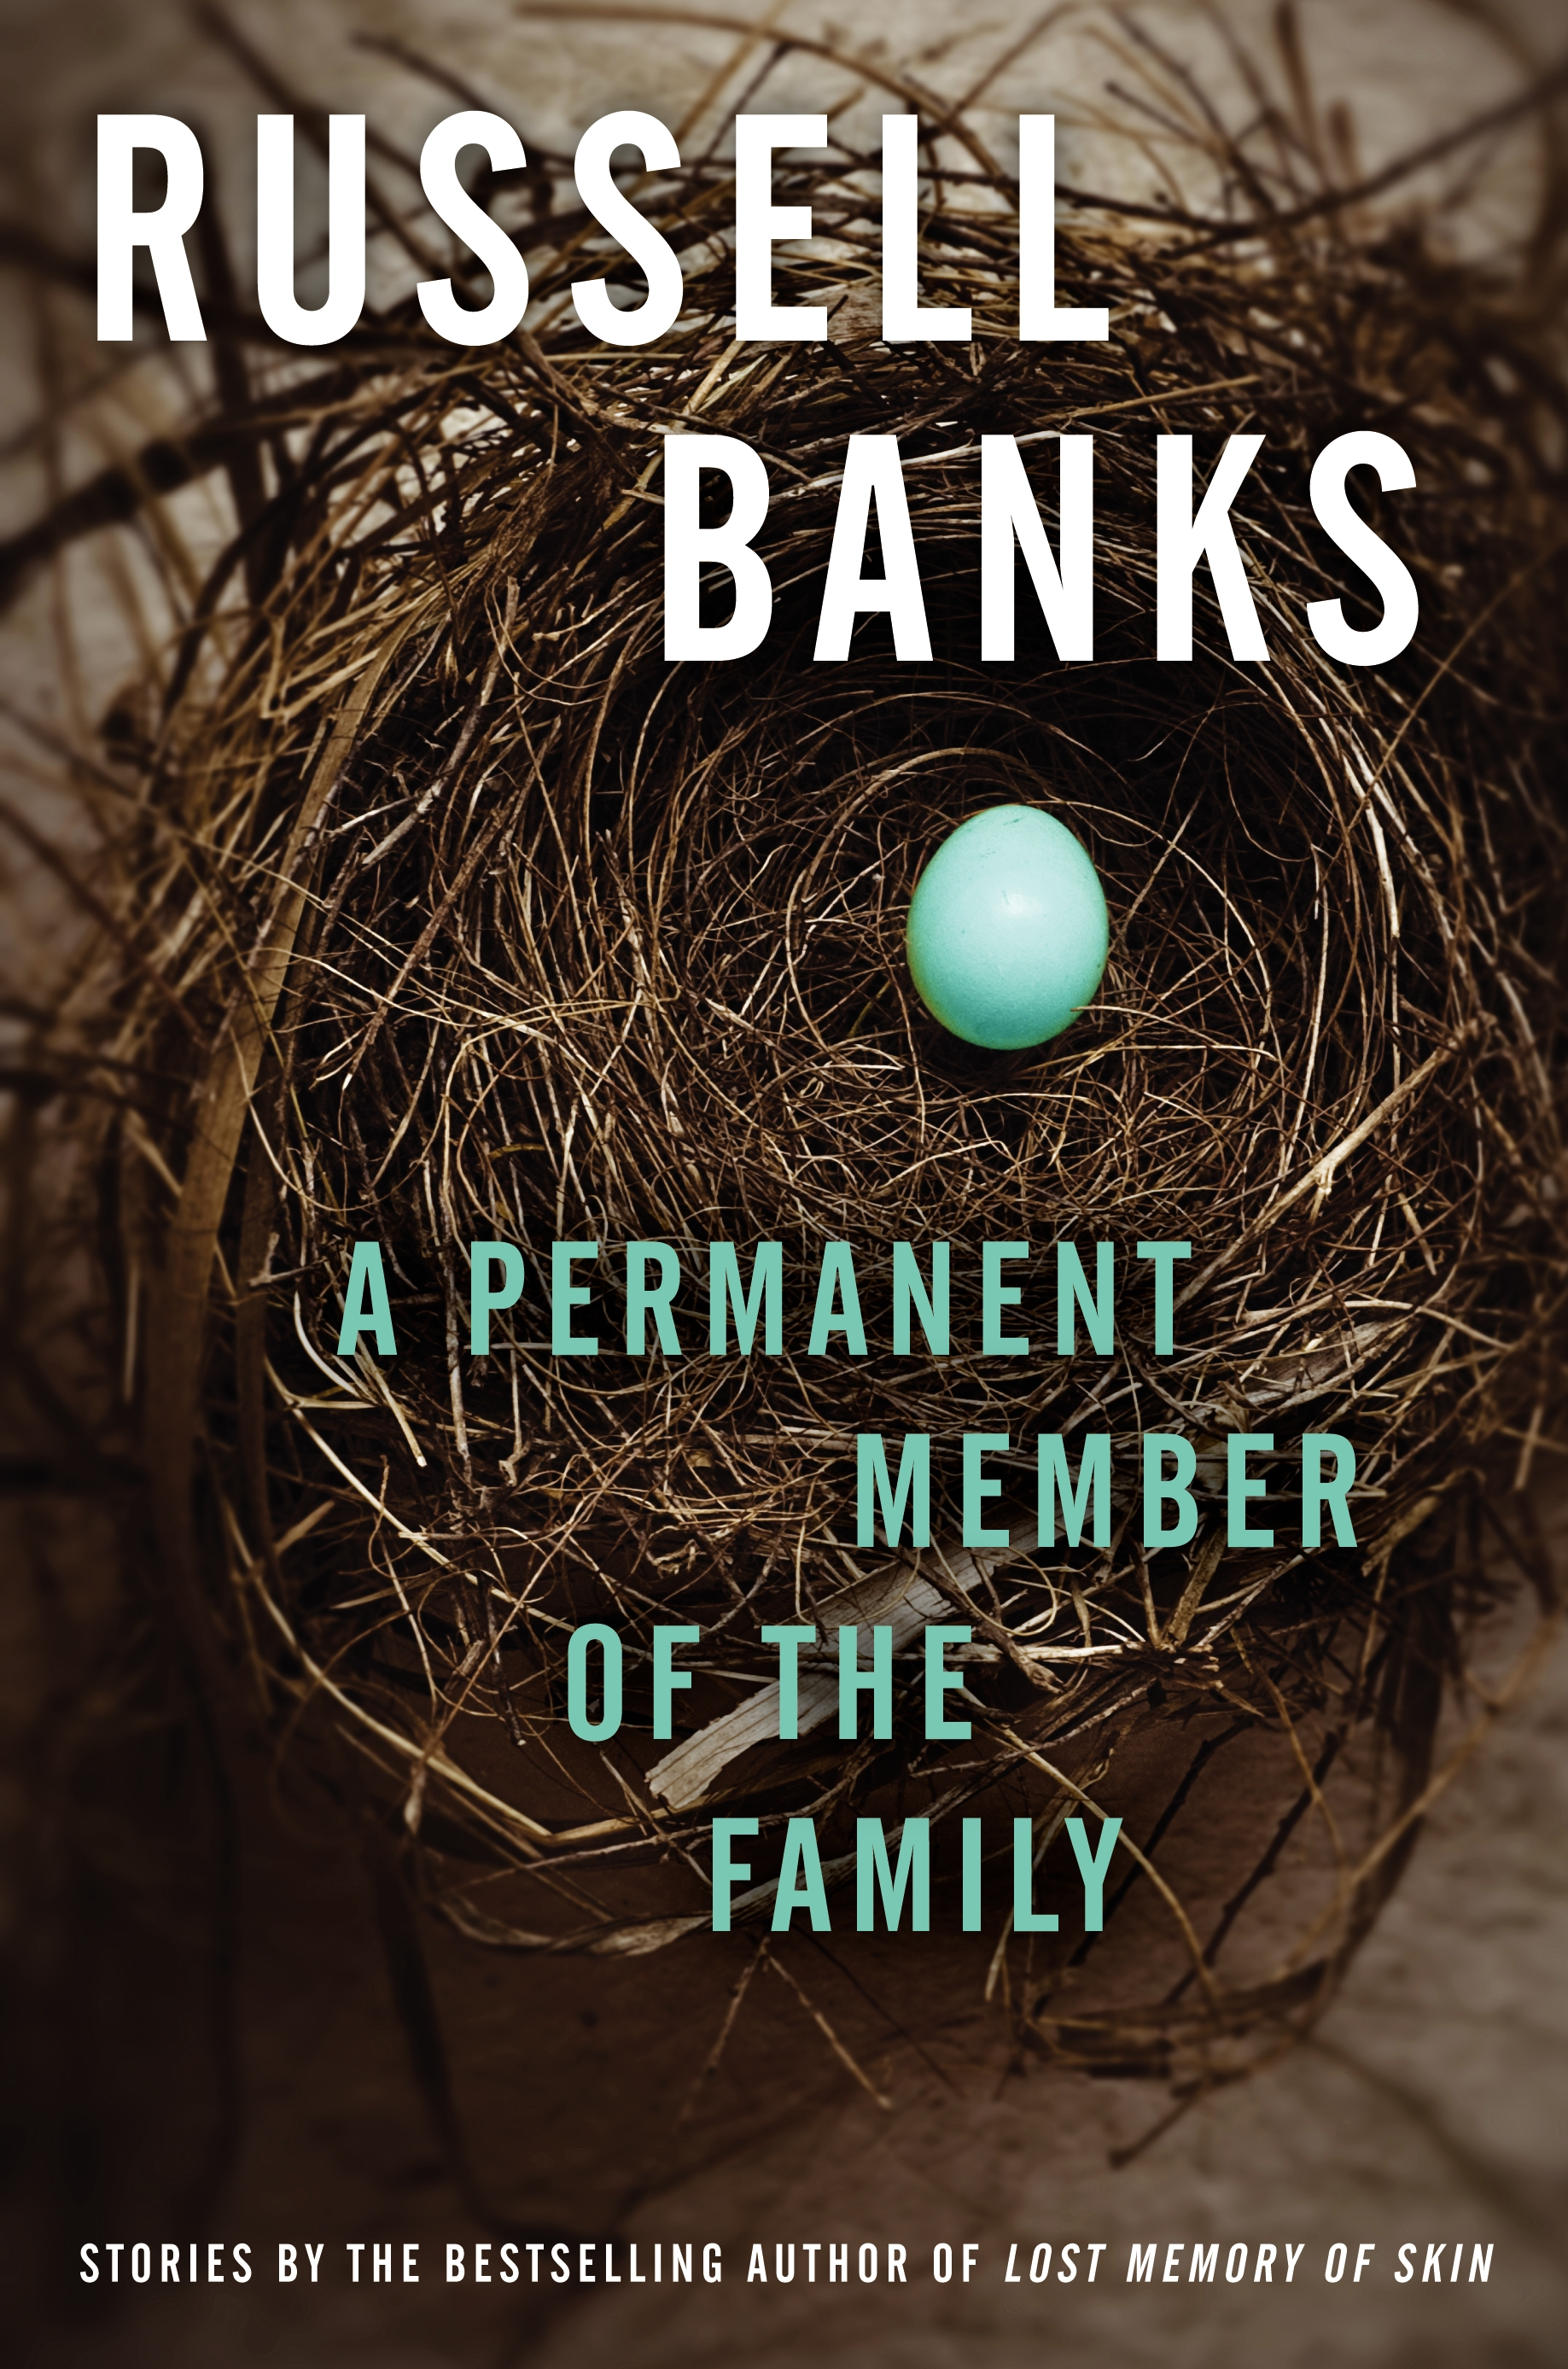 15book Russell BanksÕ A PERMANENT MEMBER OF THE FAMILY.